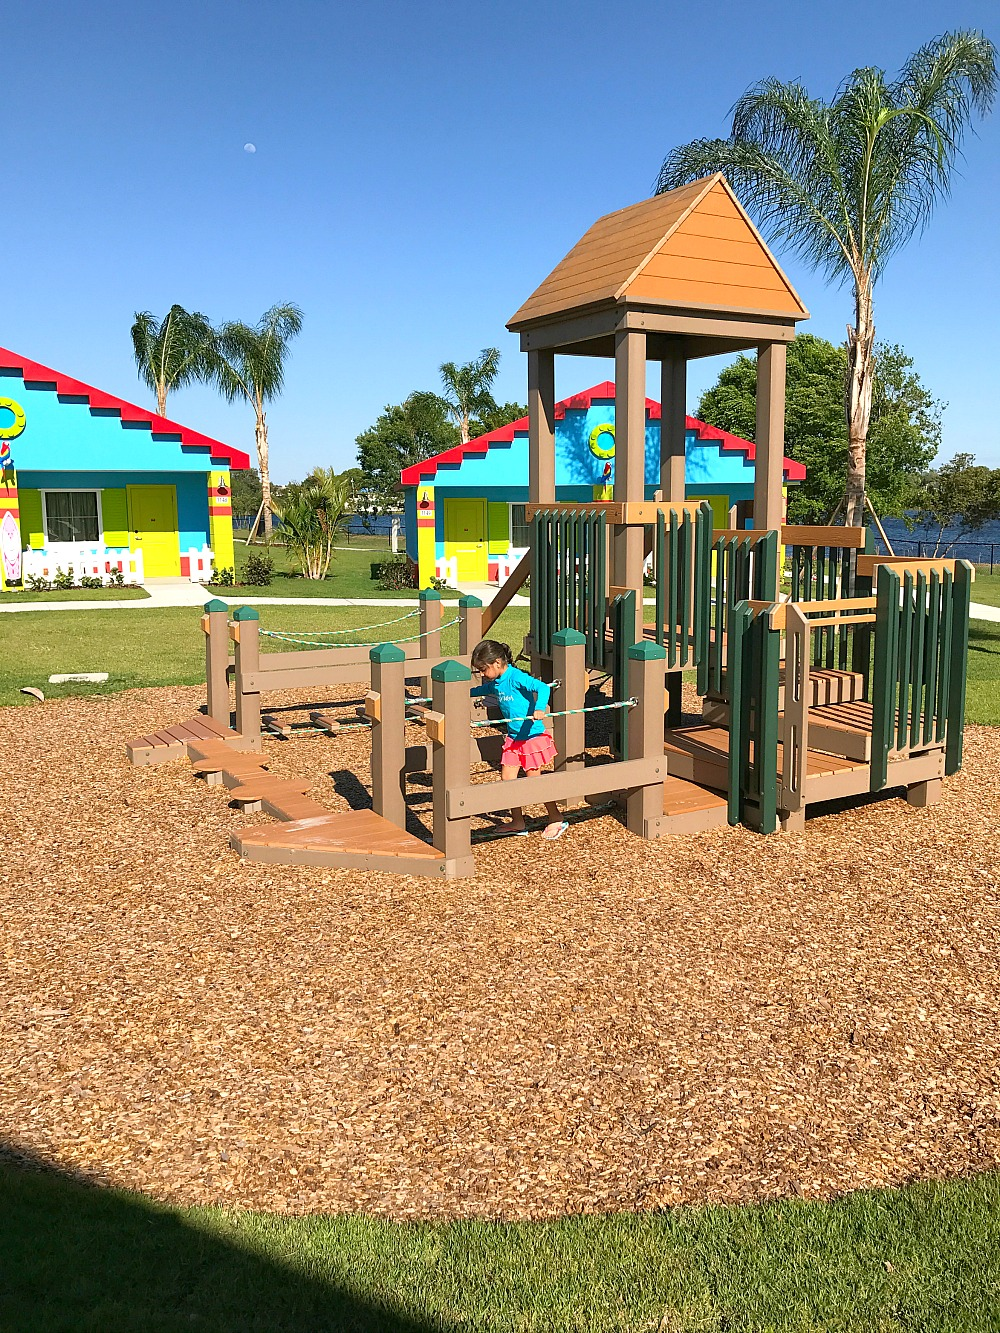 5 Reasons To Stay At LEGOLAND Florida Beach Retreat 6